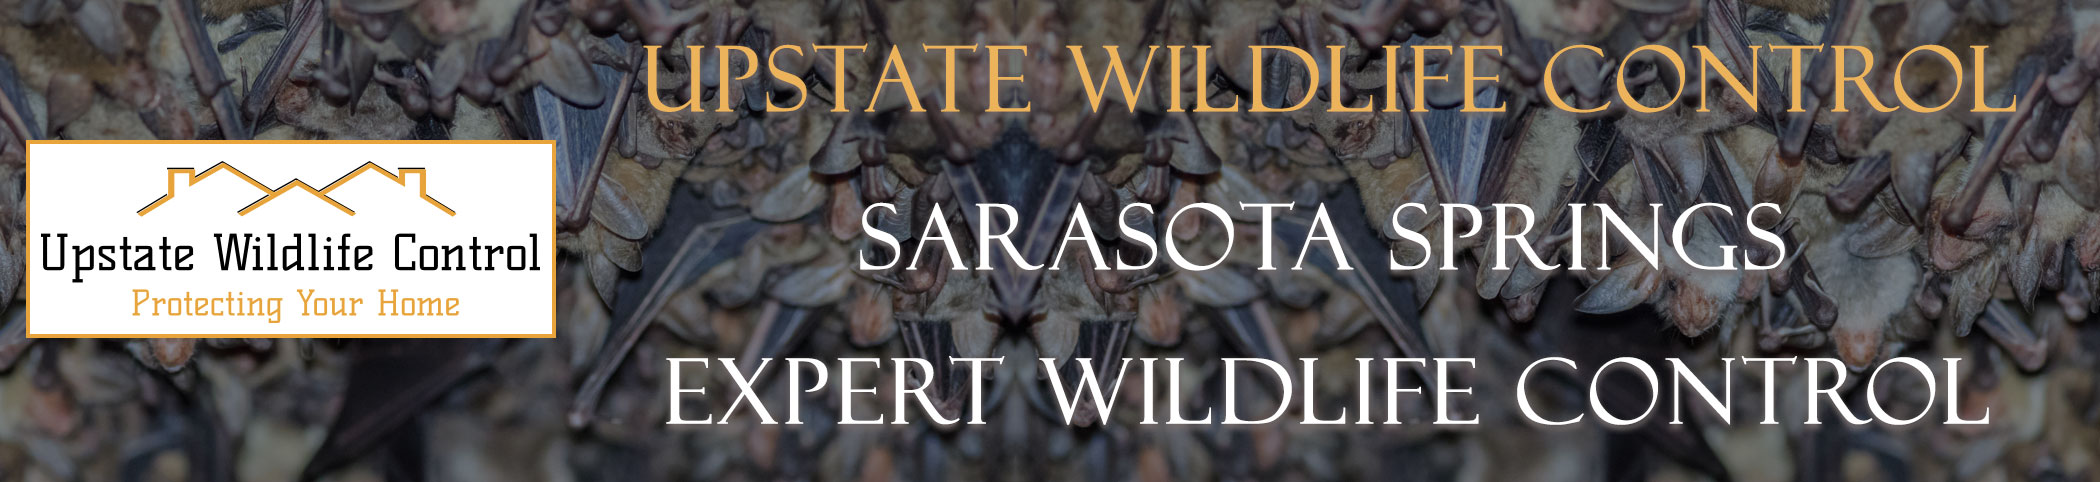 Upstate-Wildlife-Control-Sarasota-Springs-header